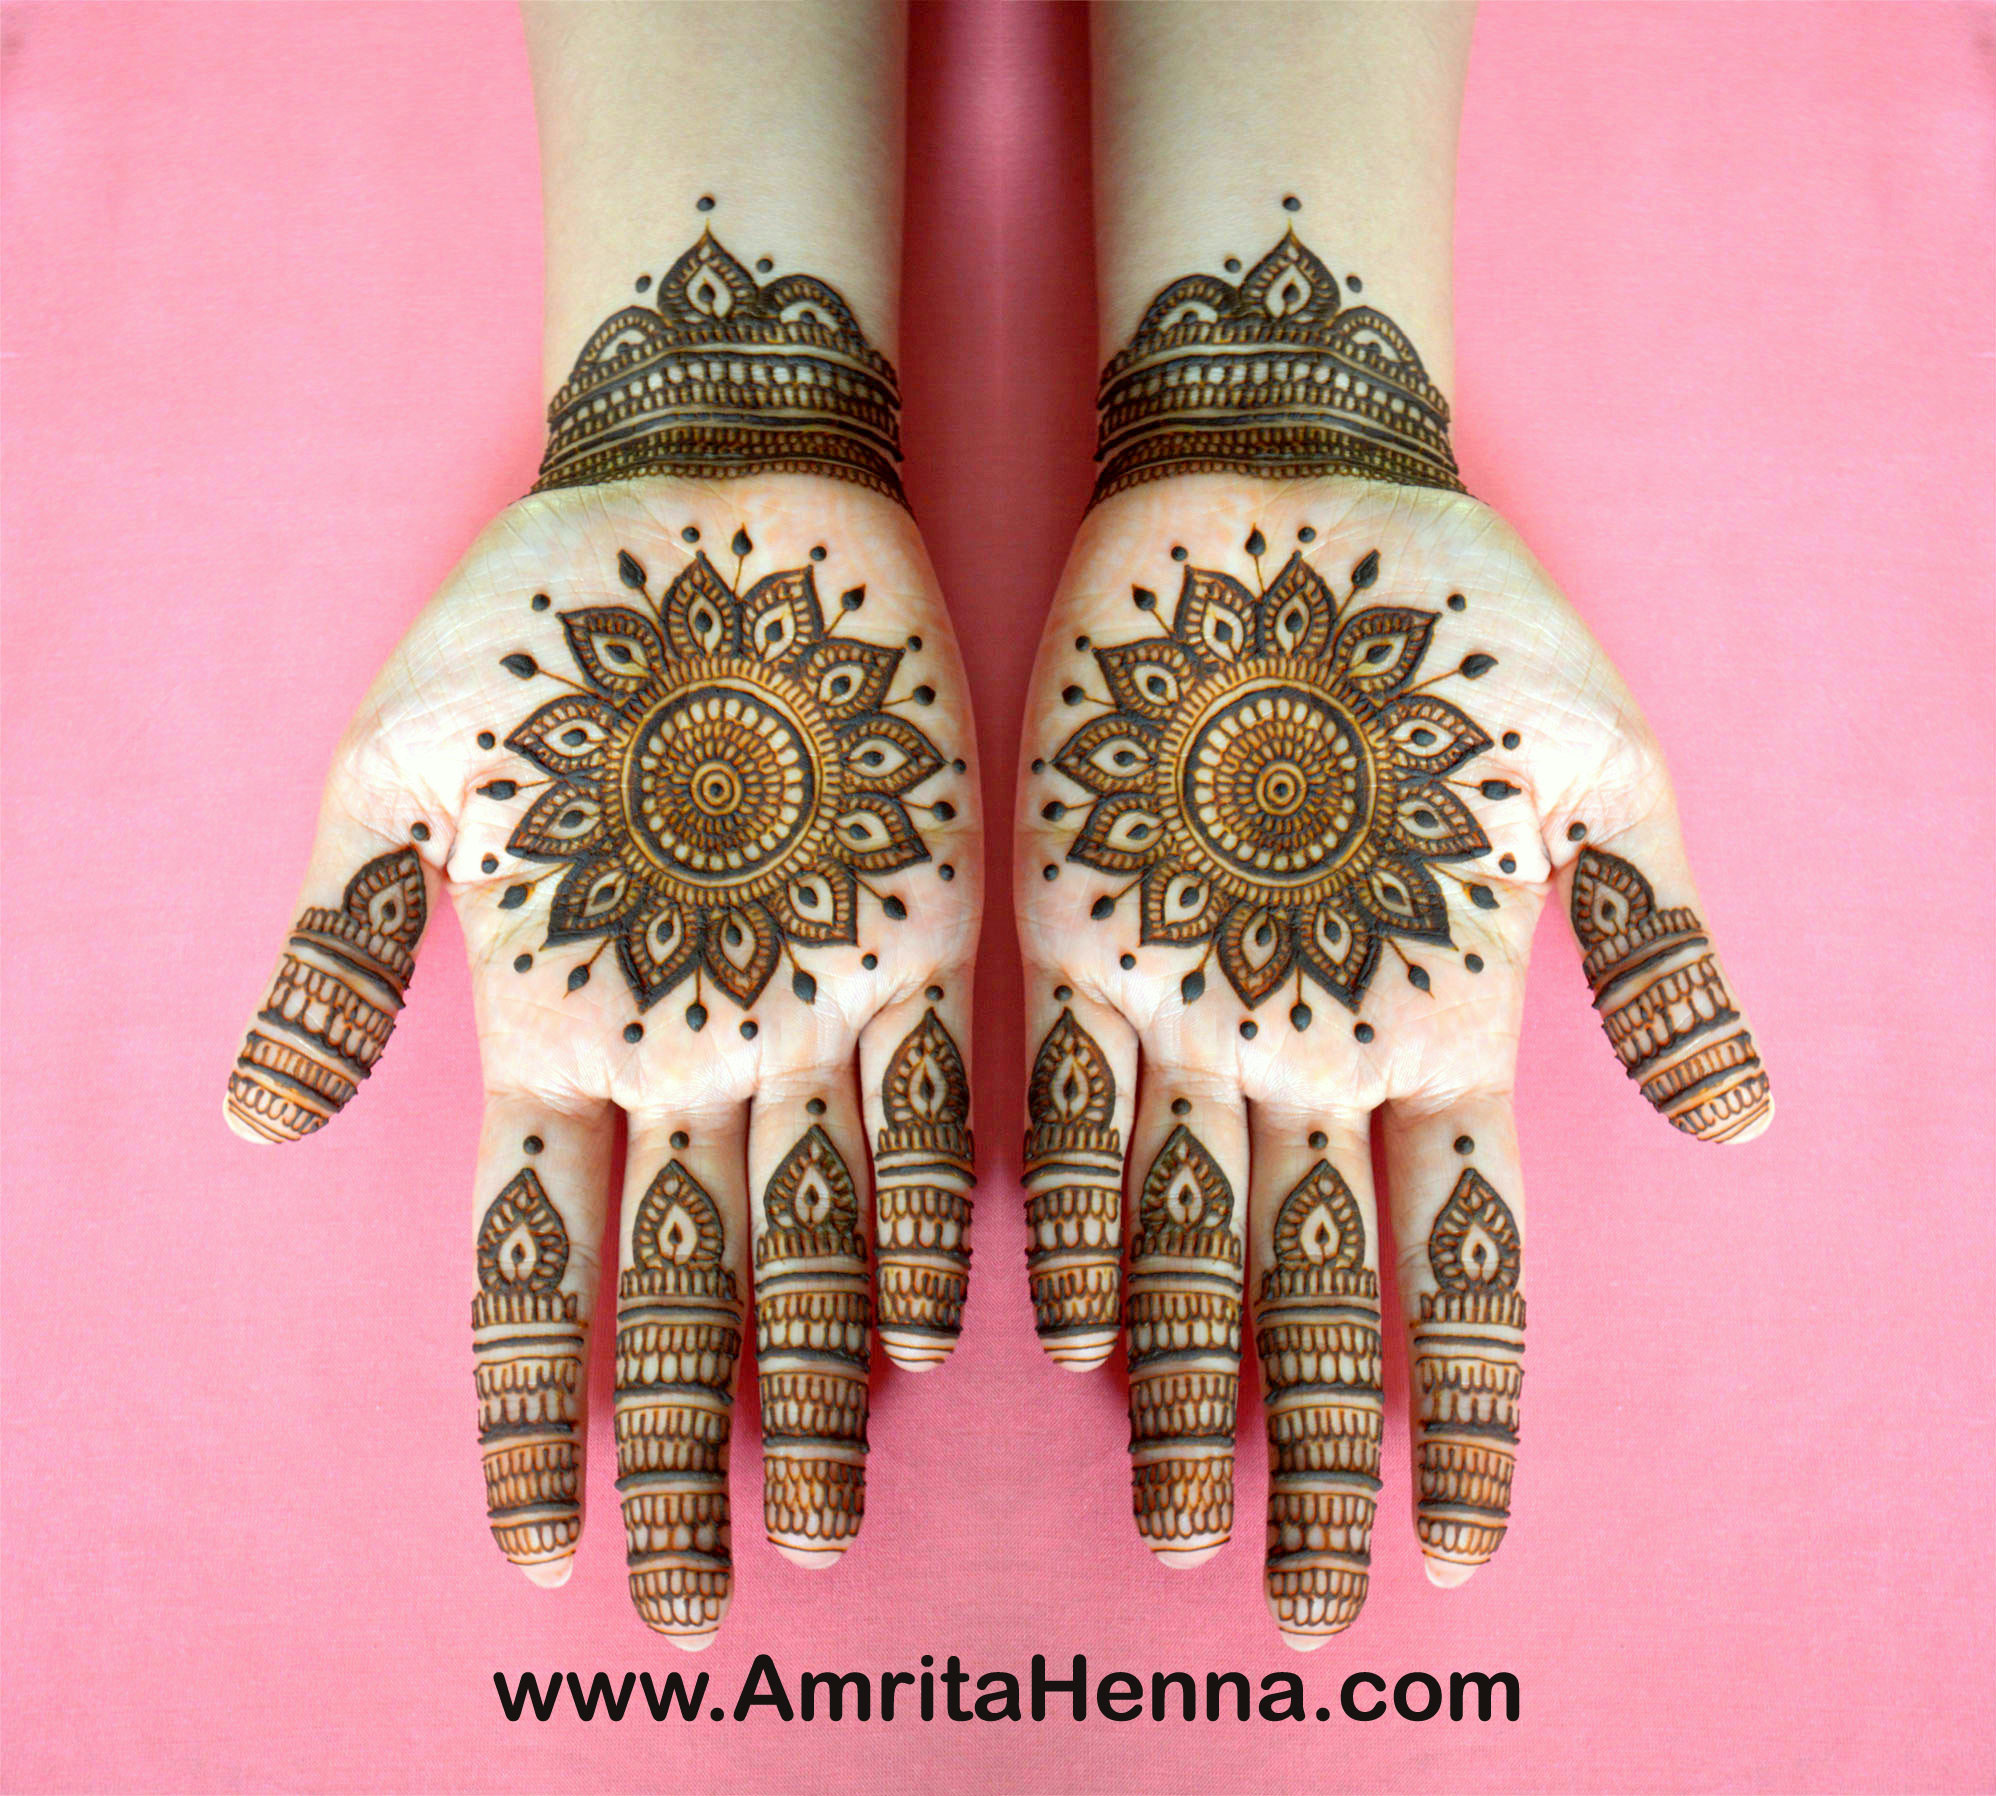 TOP 10 INTRICATE TRADITIONAL INDIAN BRIDAL HENNA MEHNDI